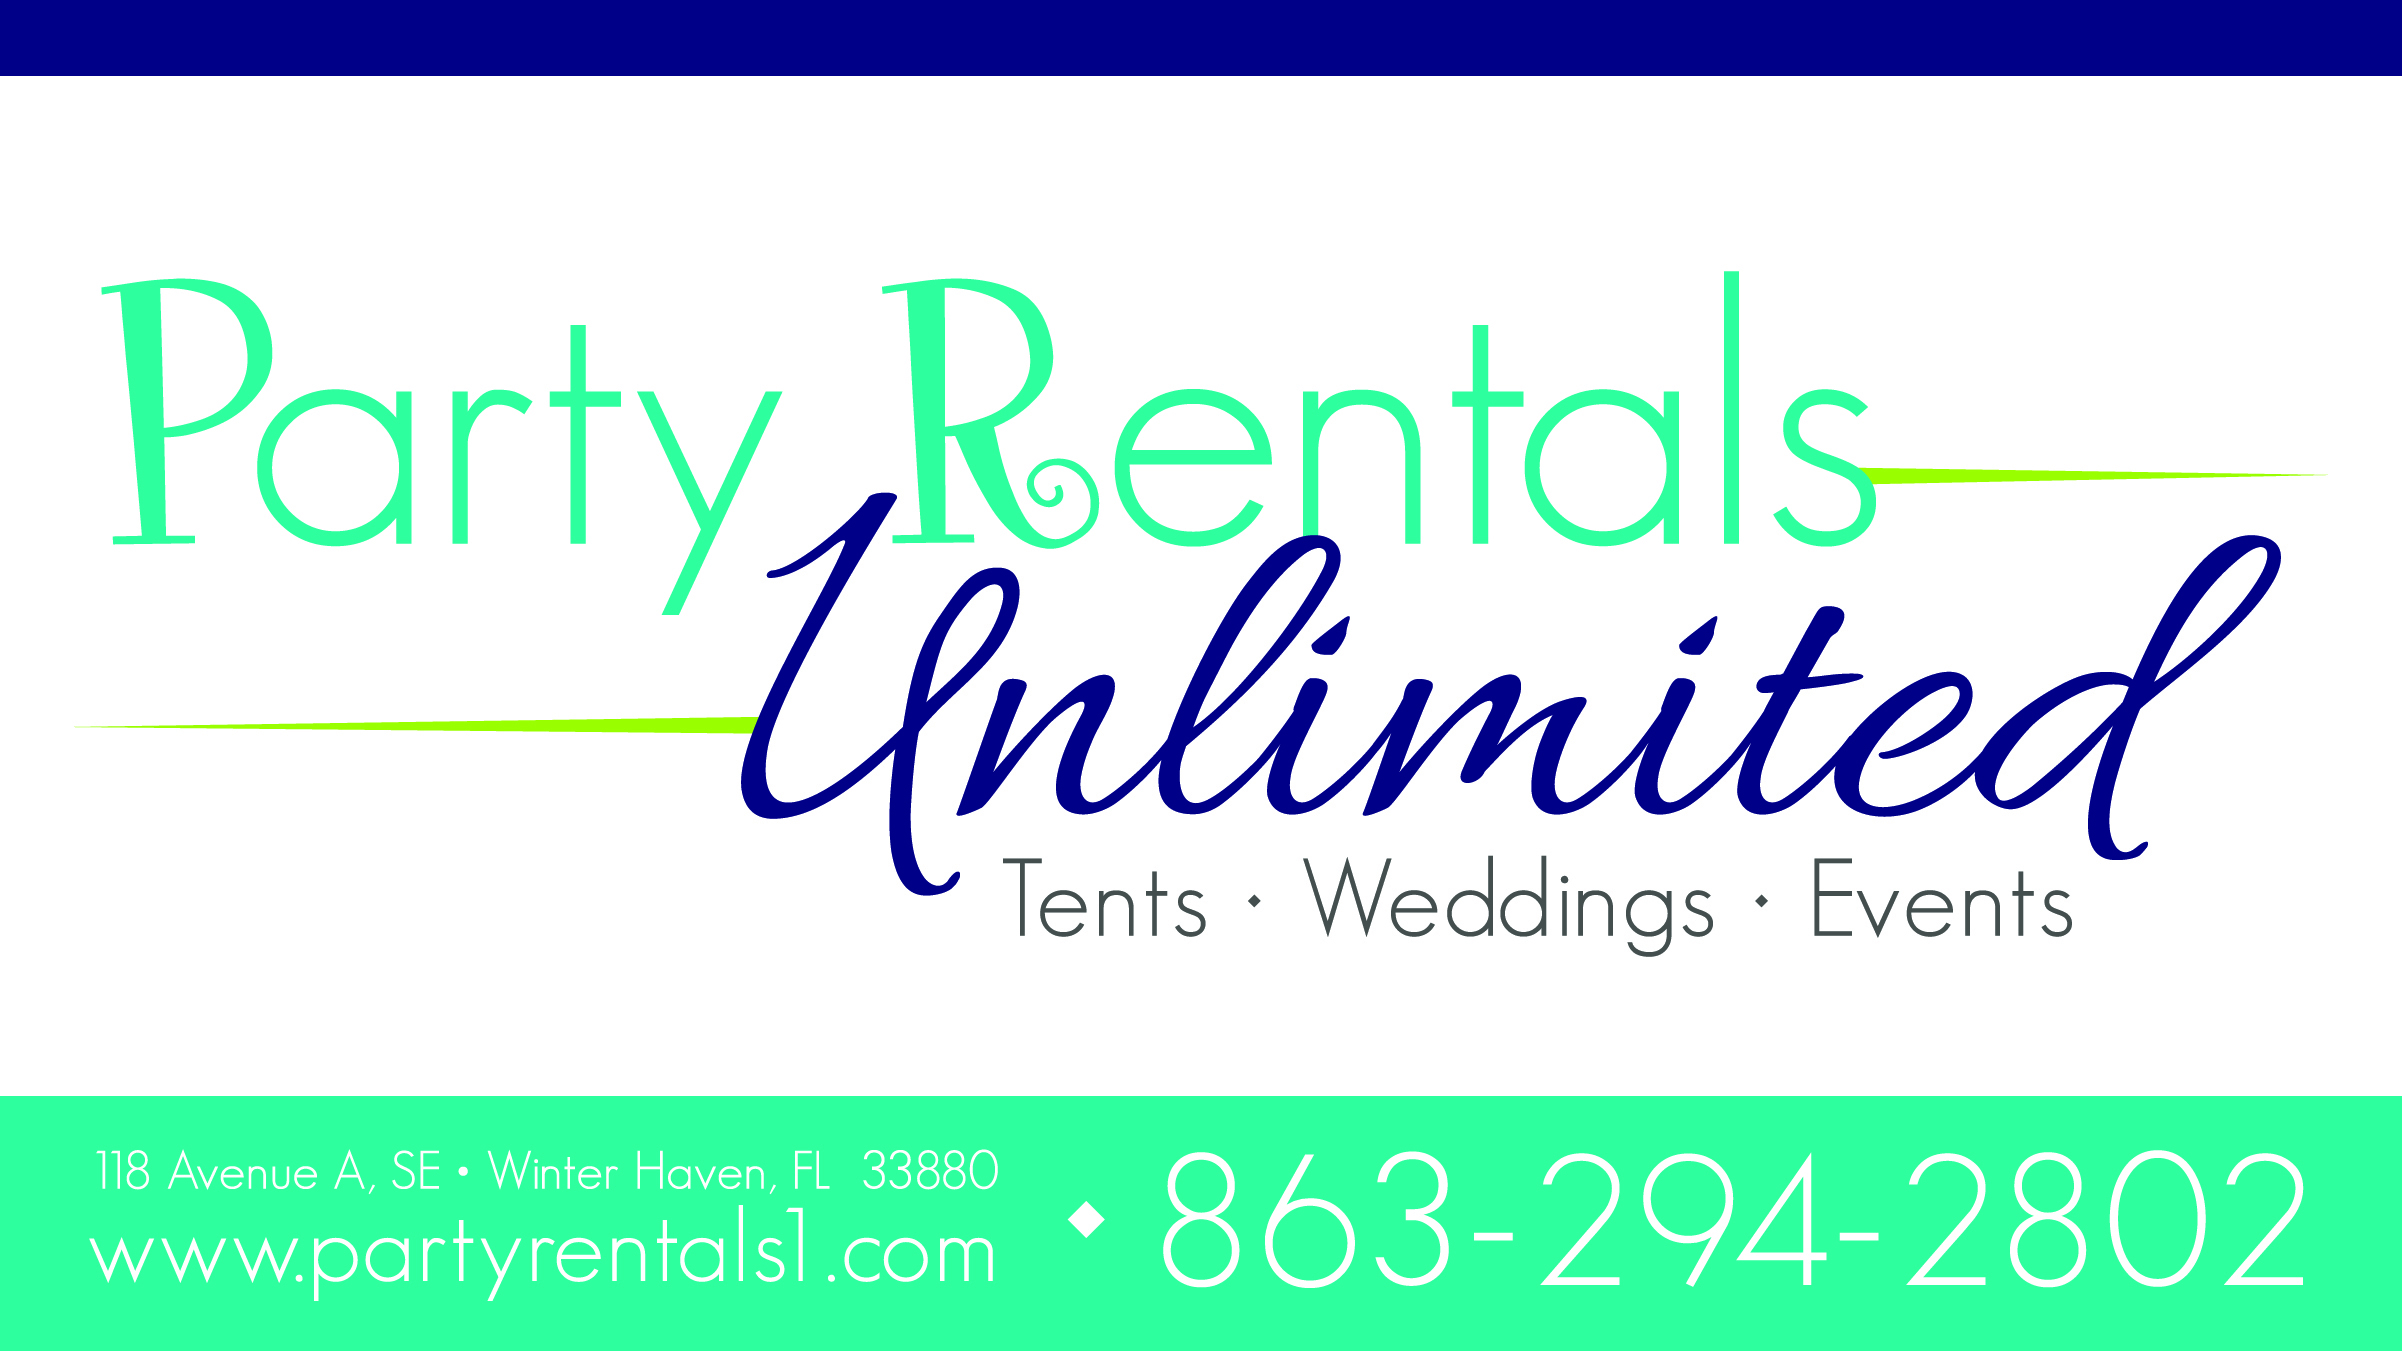 Party Rentals Unlimited